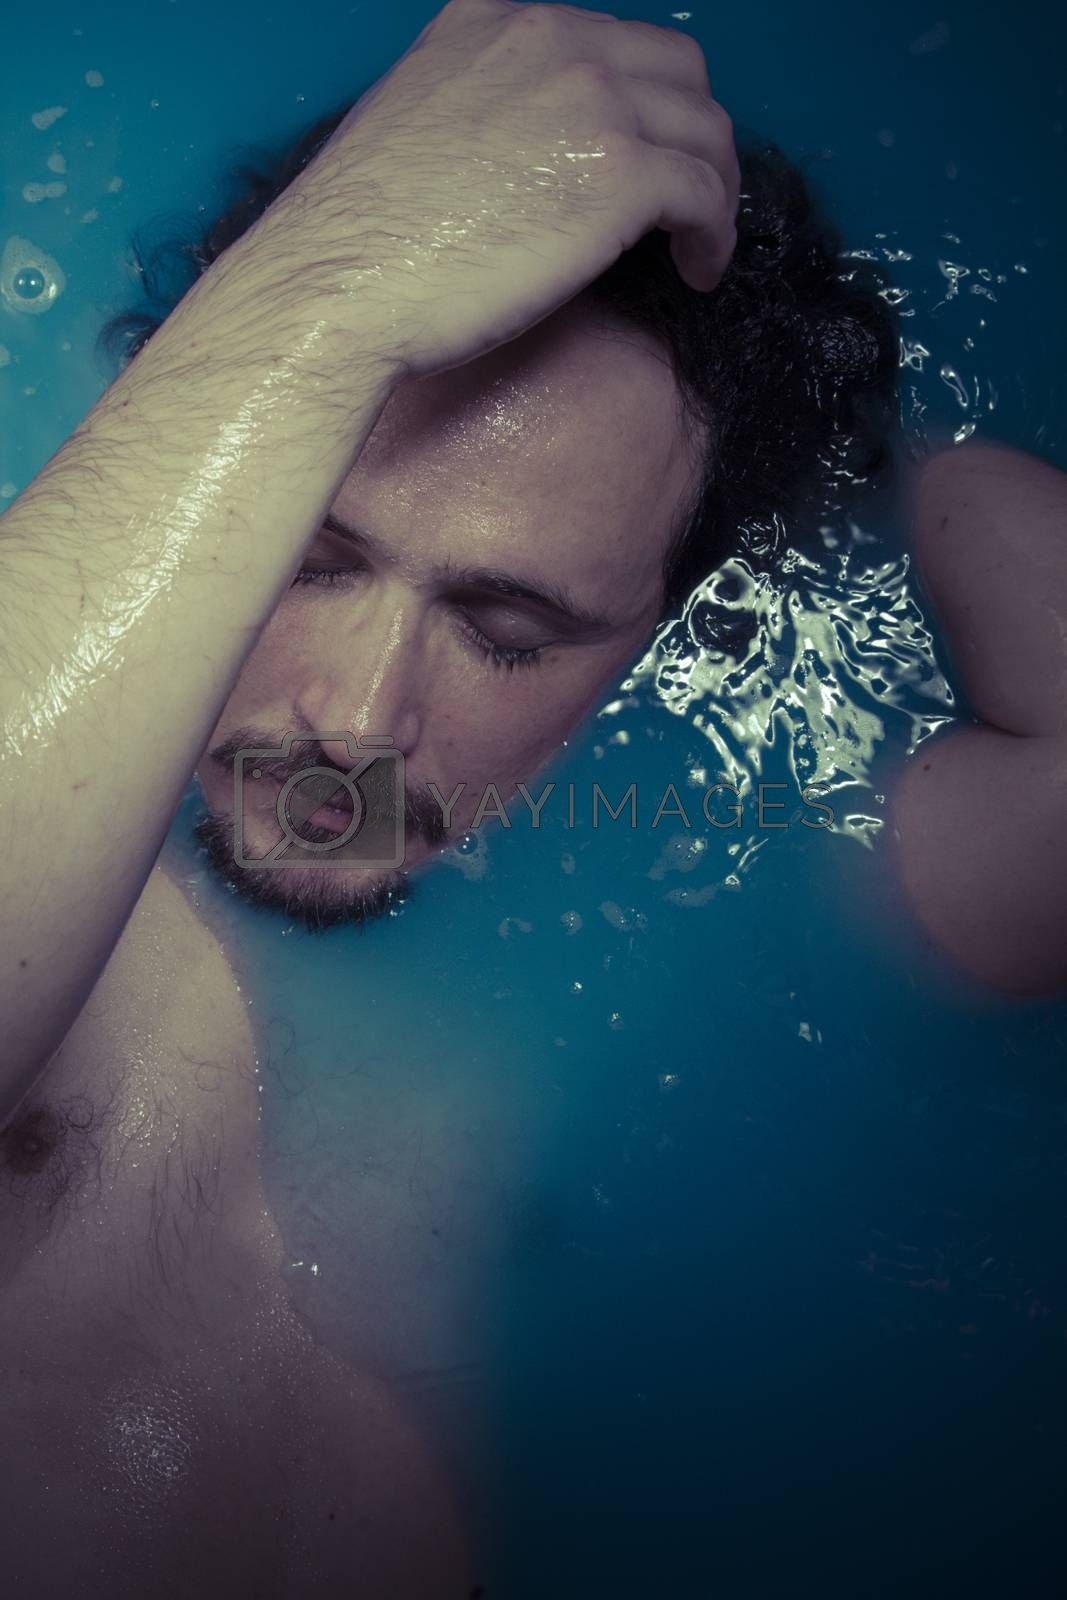 Depression, man in blue tub full of water, sadness concept by FernandoCortes